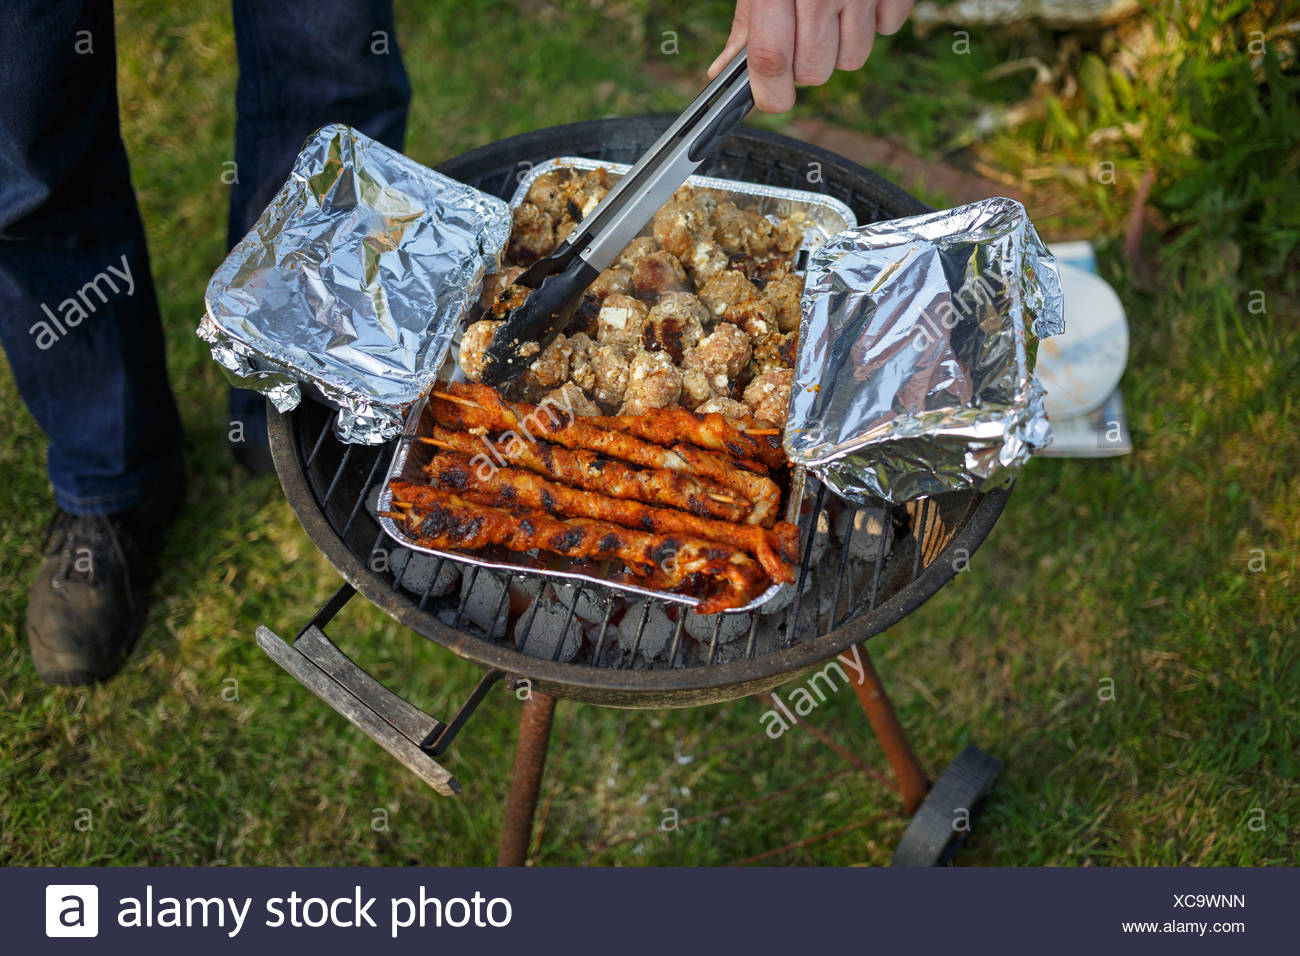 emden, germany, on a charcoal grill in a foil dish are meat and